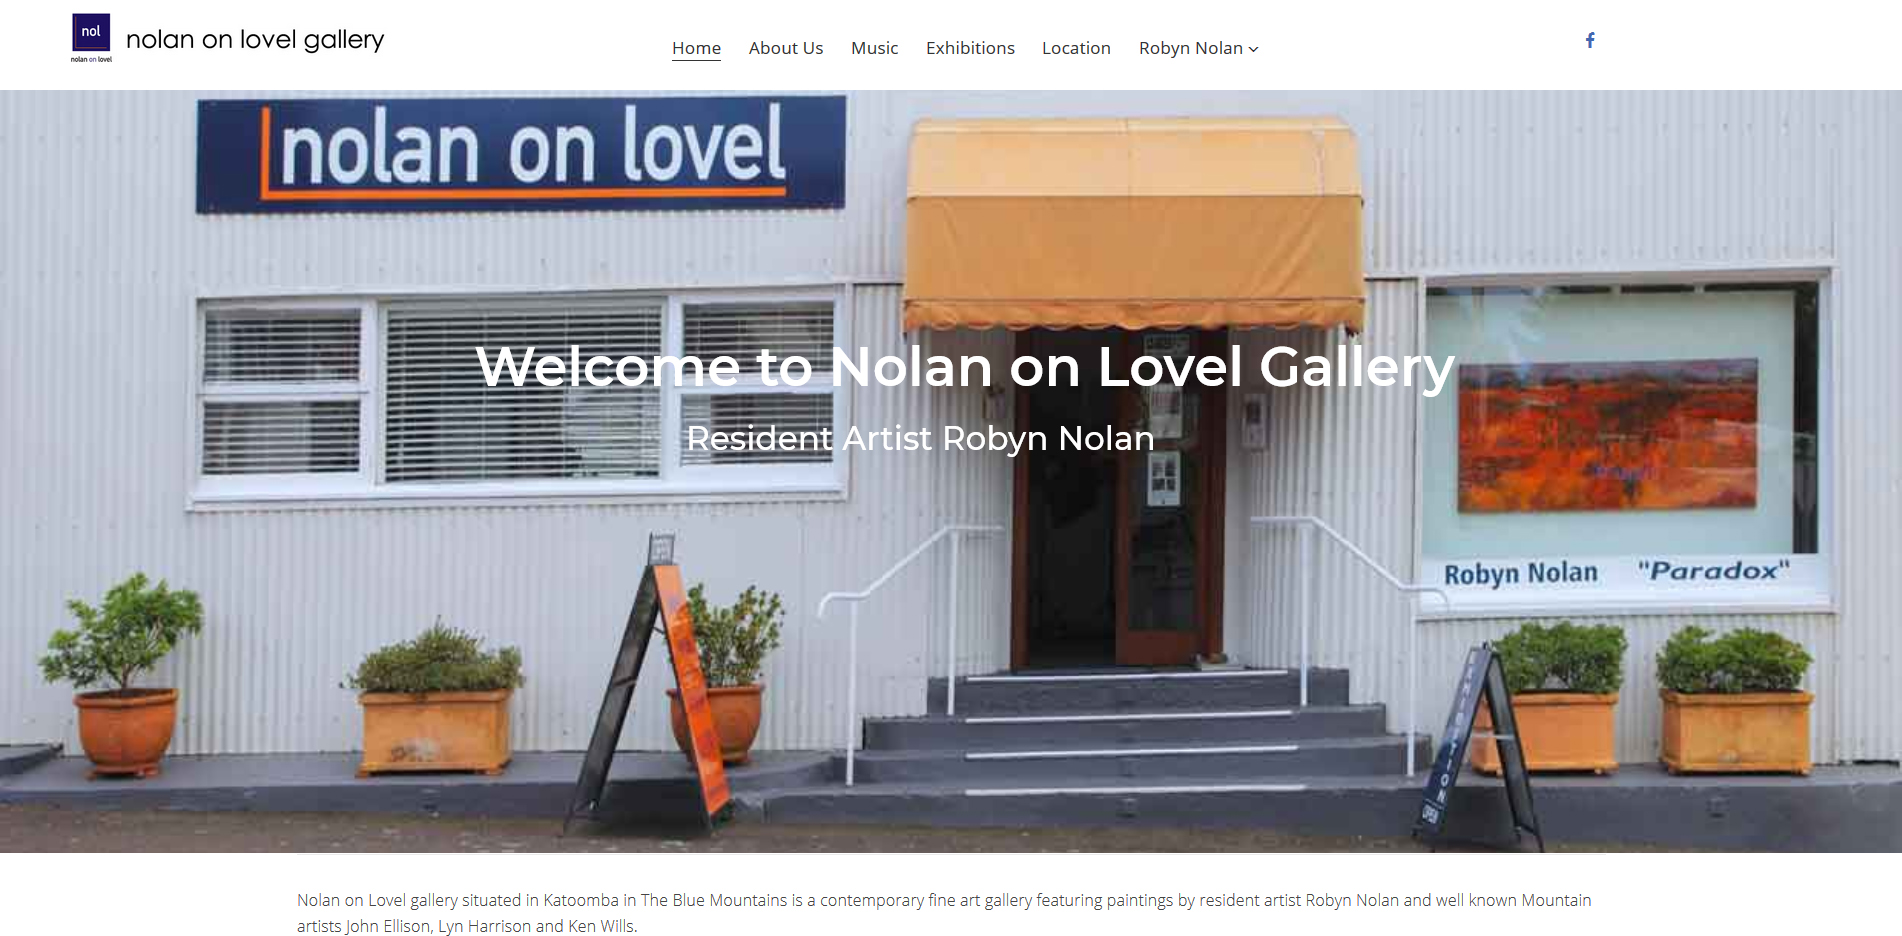 Nolan on Lovel Gallery Katoomba